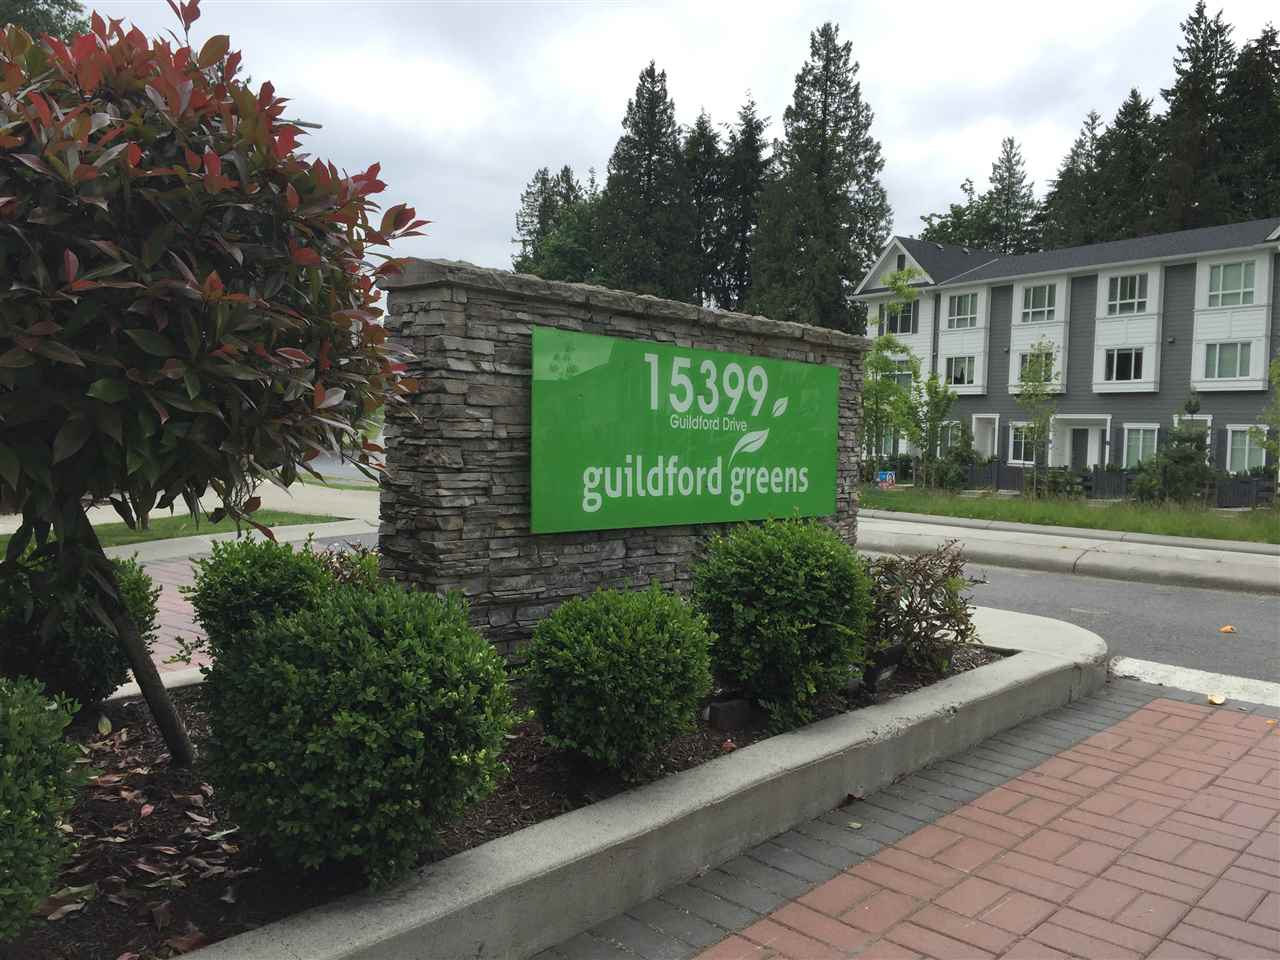 32 15399 GUILDFORD DRIVE, Surrey